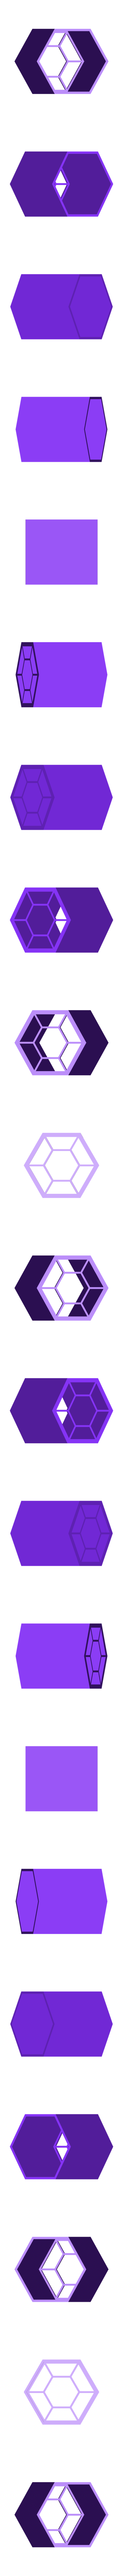 hex_module_with_back.stl Download free STL file Modular Hex Drawers • Design to 3D print, O3D